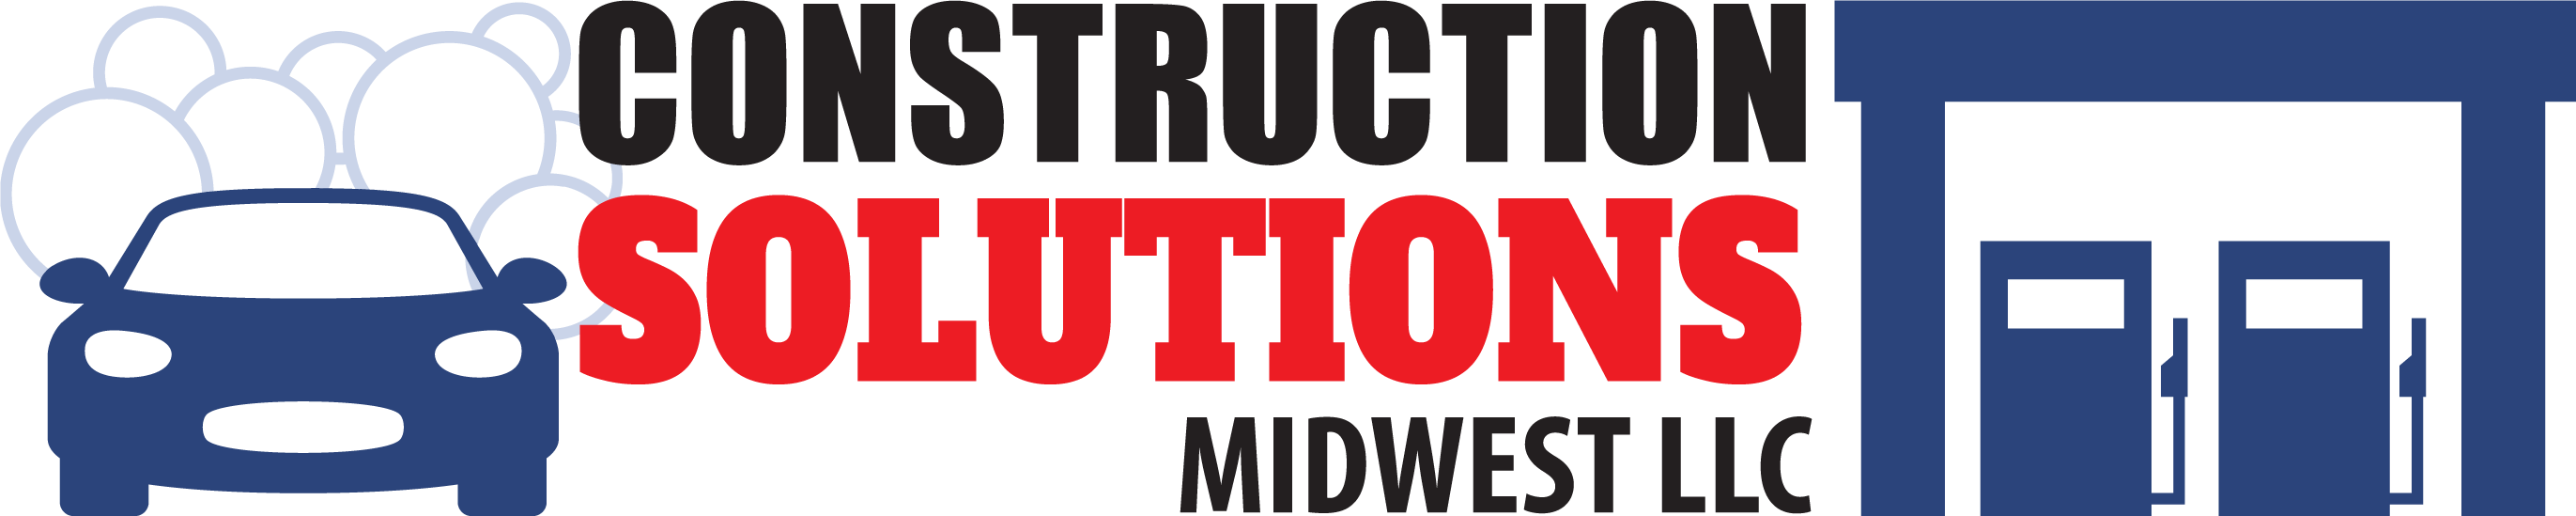 Construction Solutions Midwest